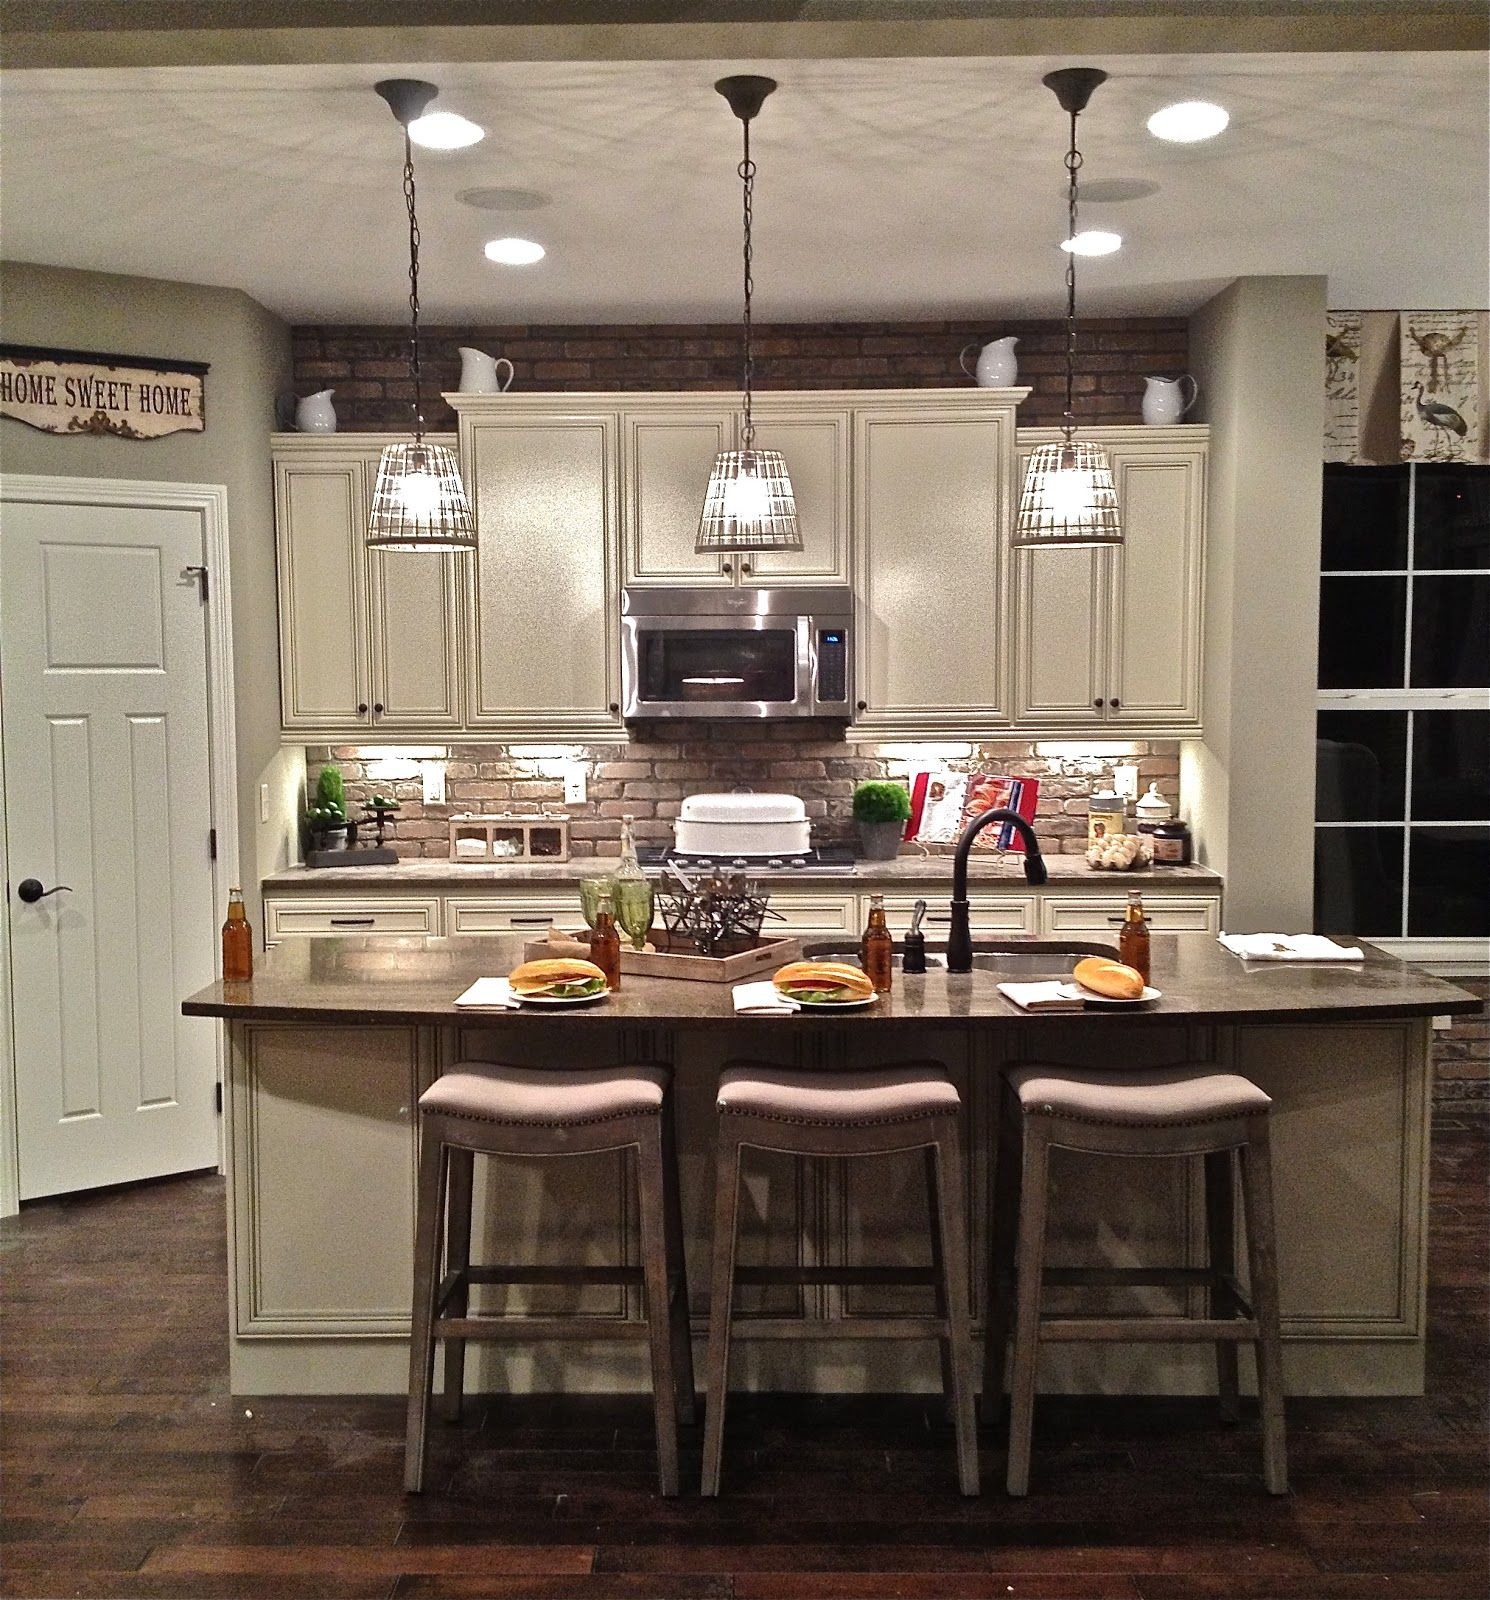 Interior Triple Cage Pendant Island Lighting Over Large Kitchen Island And Wooden Stools As Well Kitchen Remodel Layout Kitchen Design Modern Kitchen Lighting Three pendant kitchen light